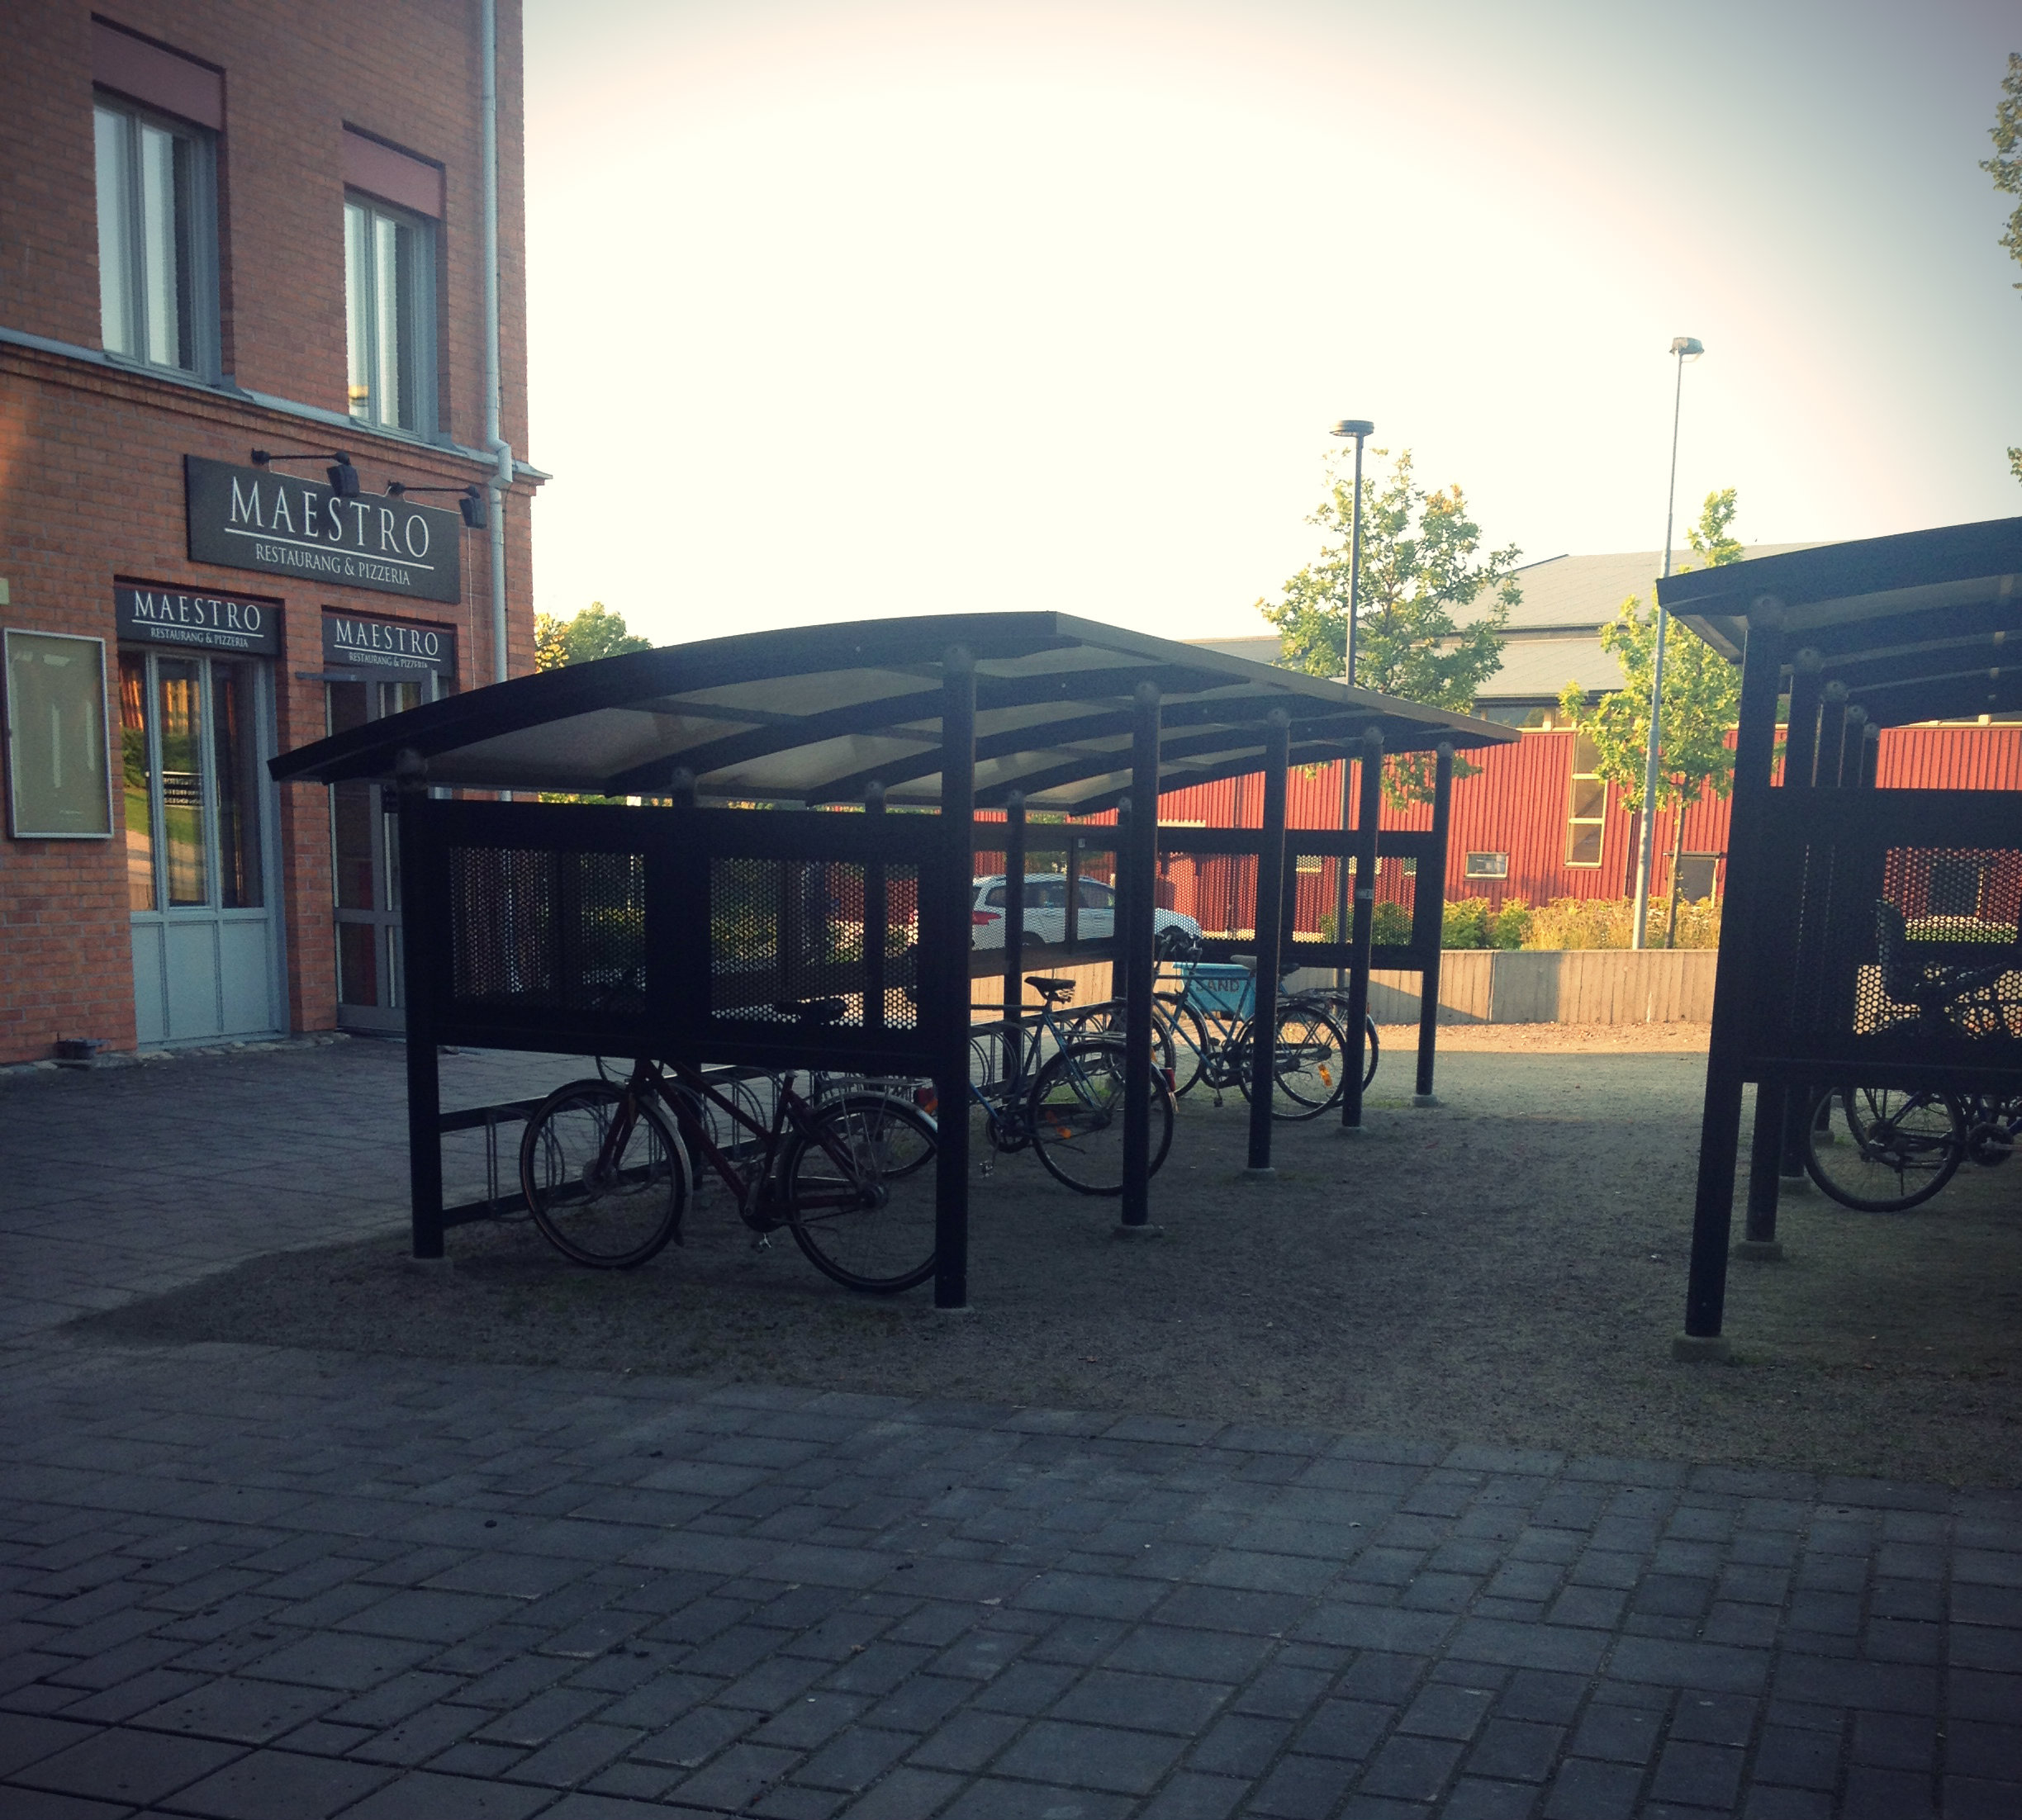 Bike Shelter by Maestro Pizza   Tall Girl Meets World